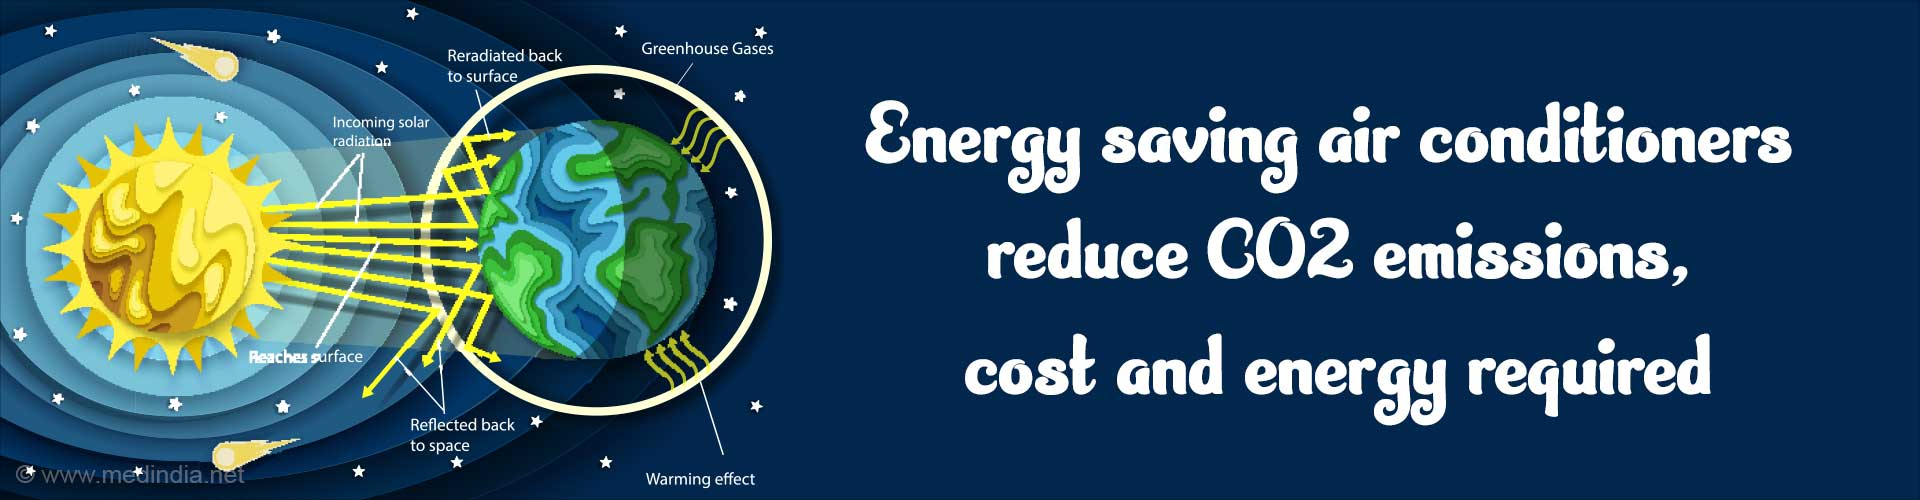 Climate Friendly, Energy Efficient Cooling Plays a Major Role in Reduction of Cost and Greenhouse Gas Emissions